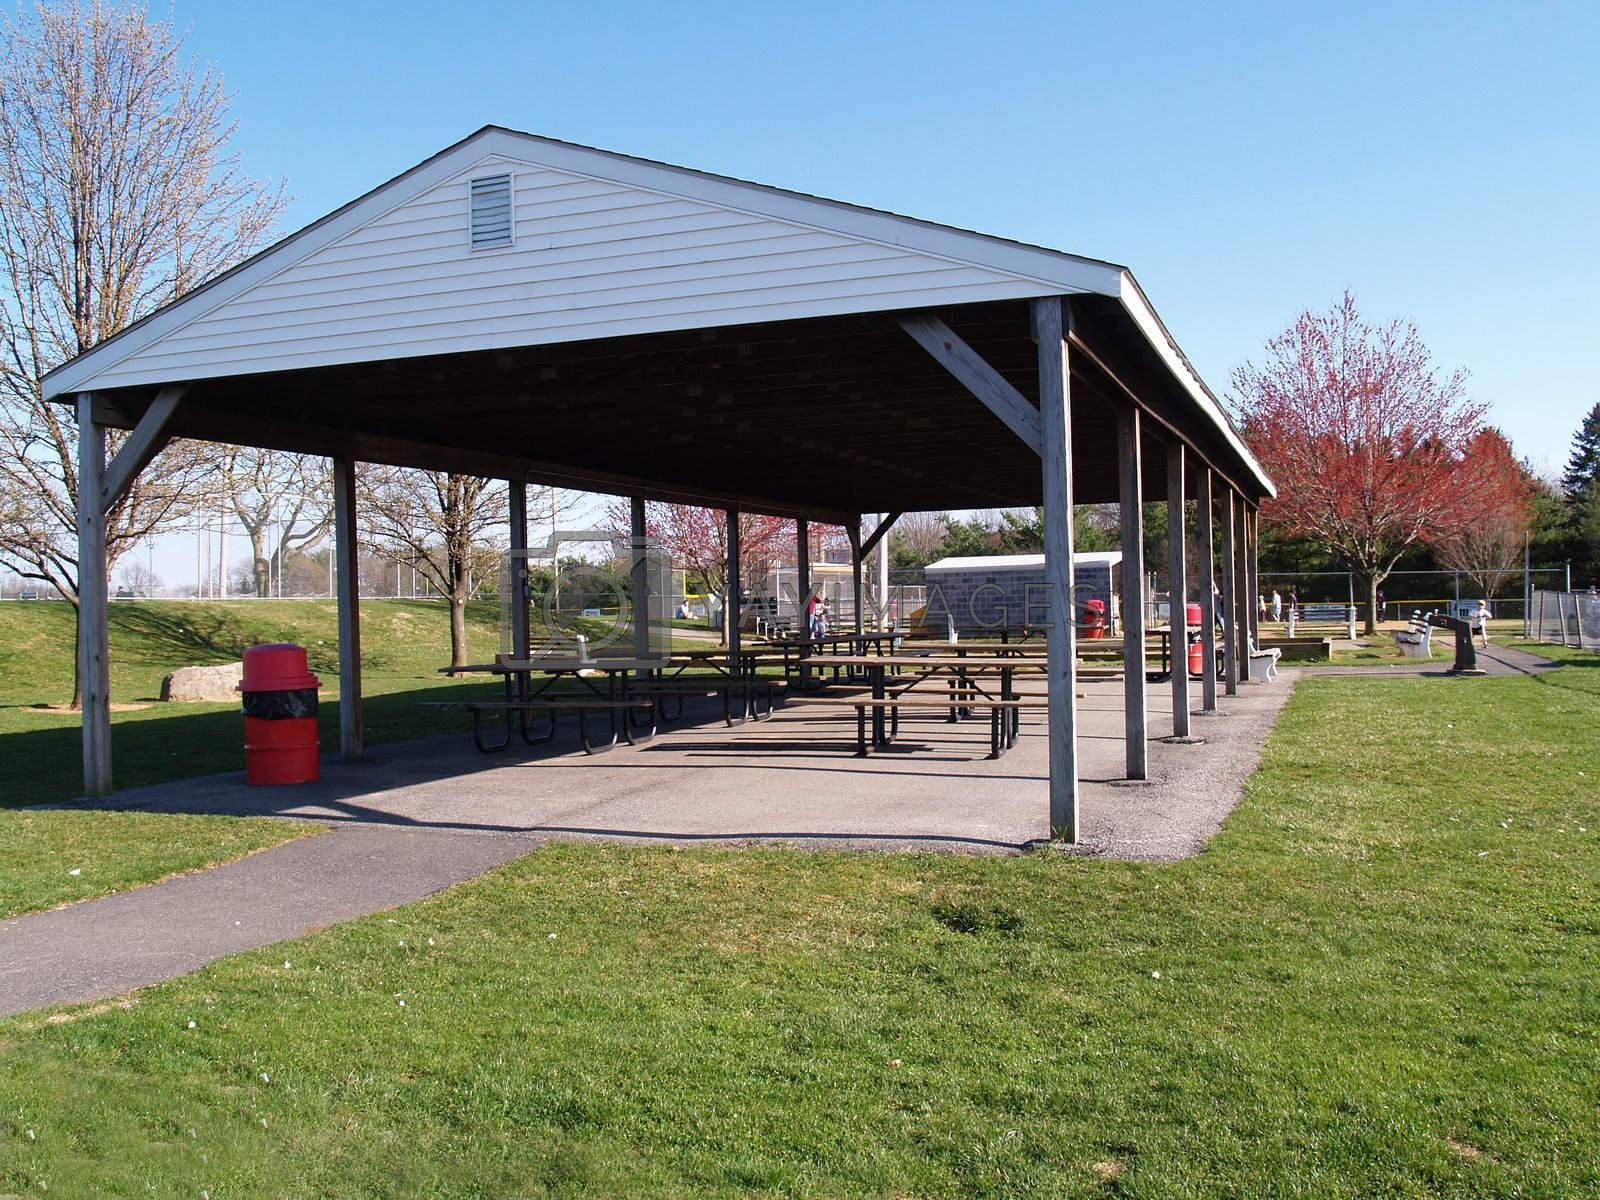 an empty outdoor picnic area with a covered roof and tables